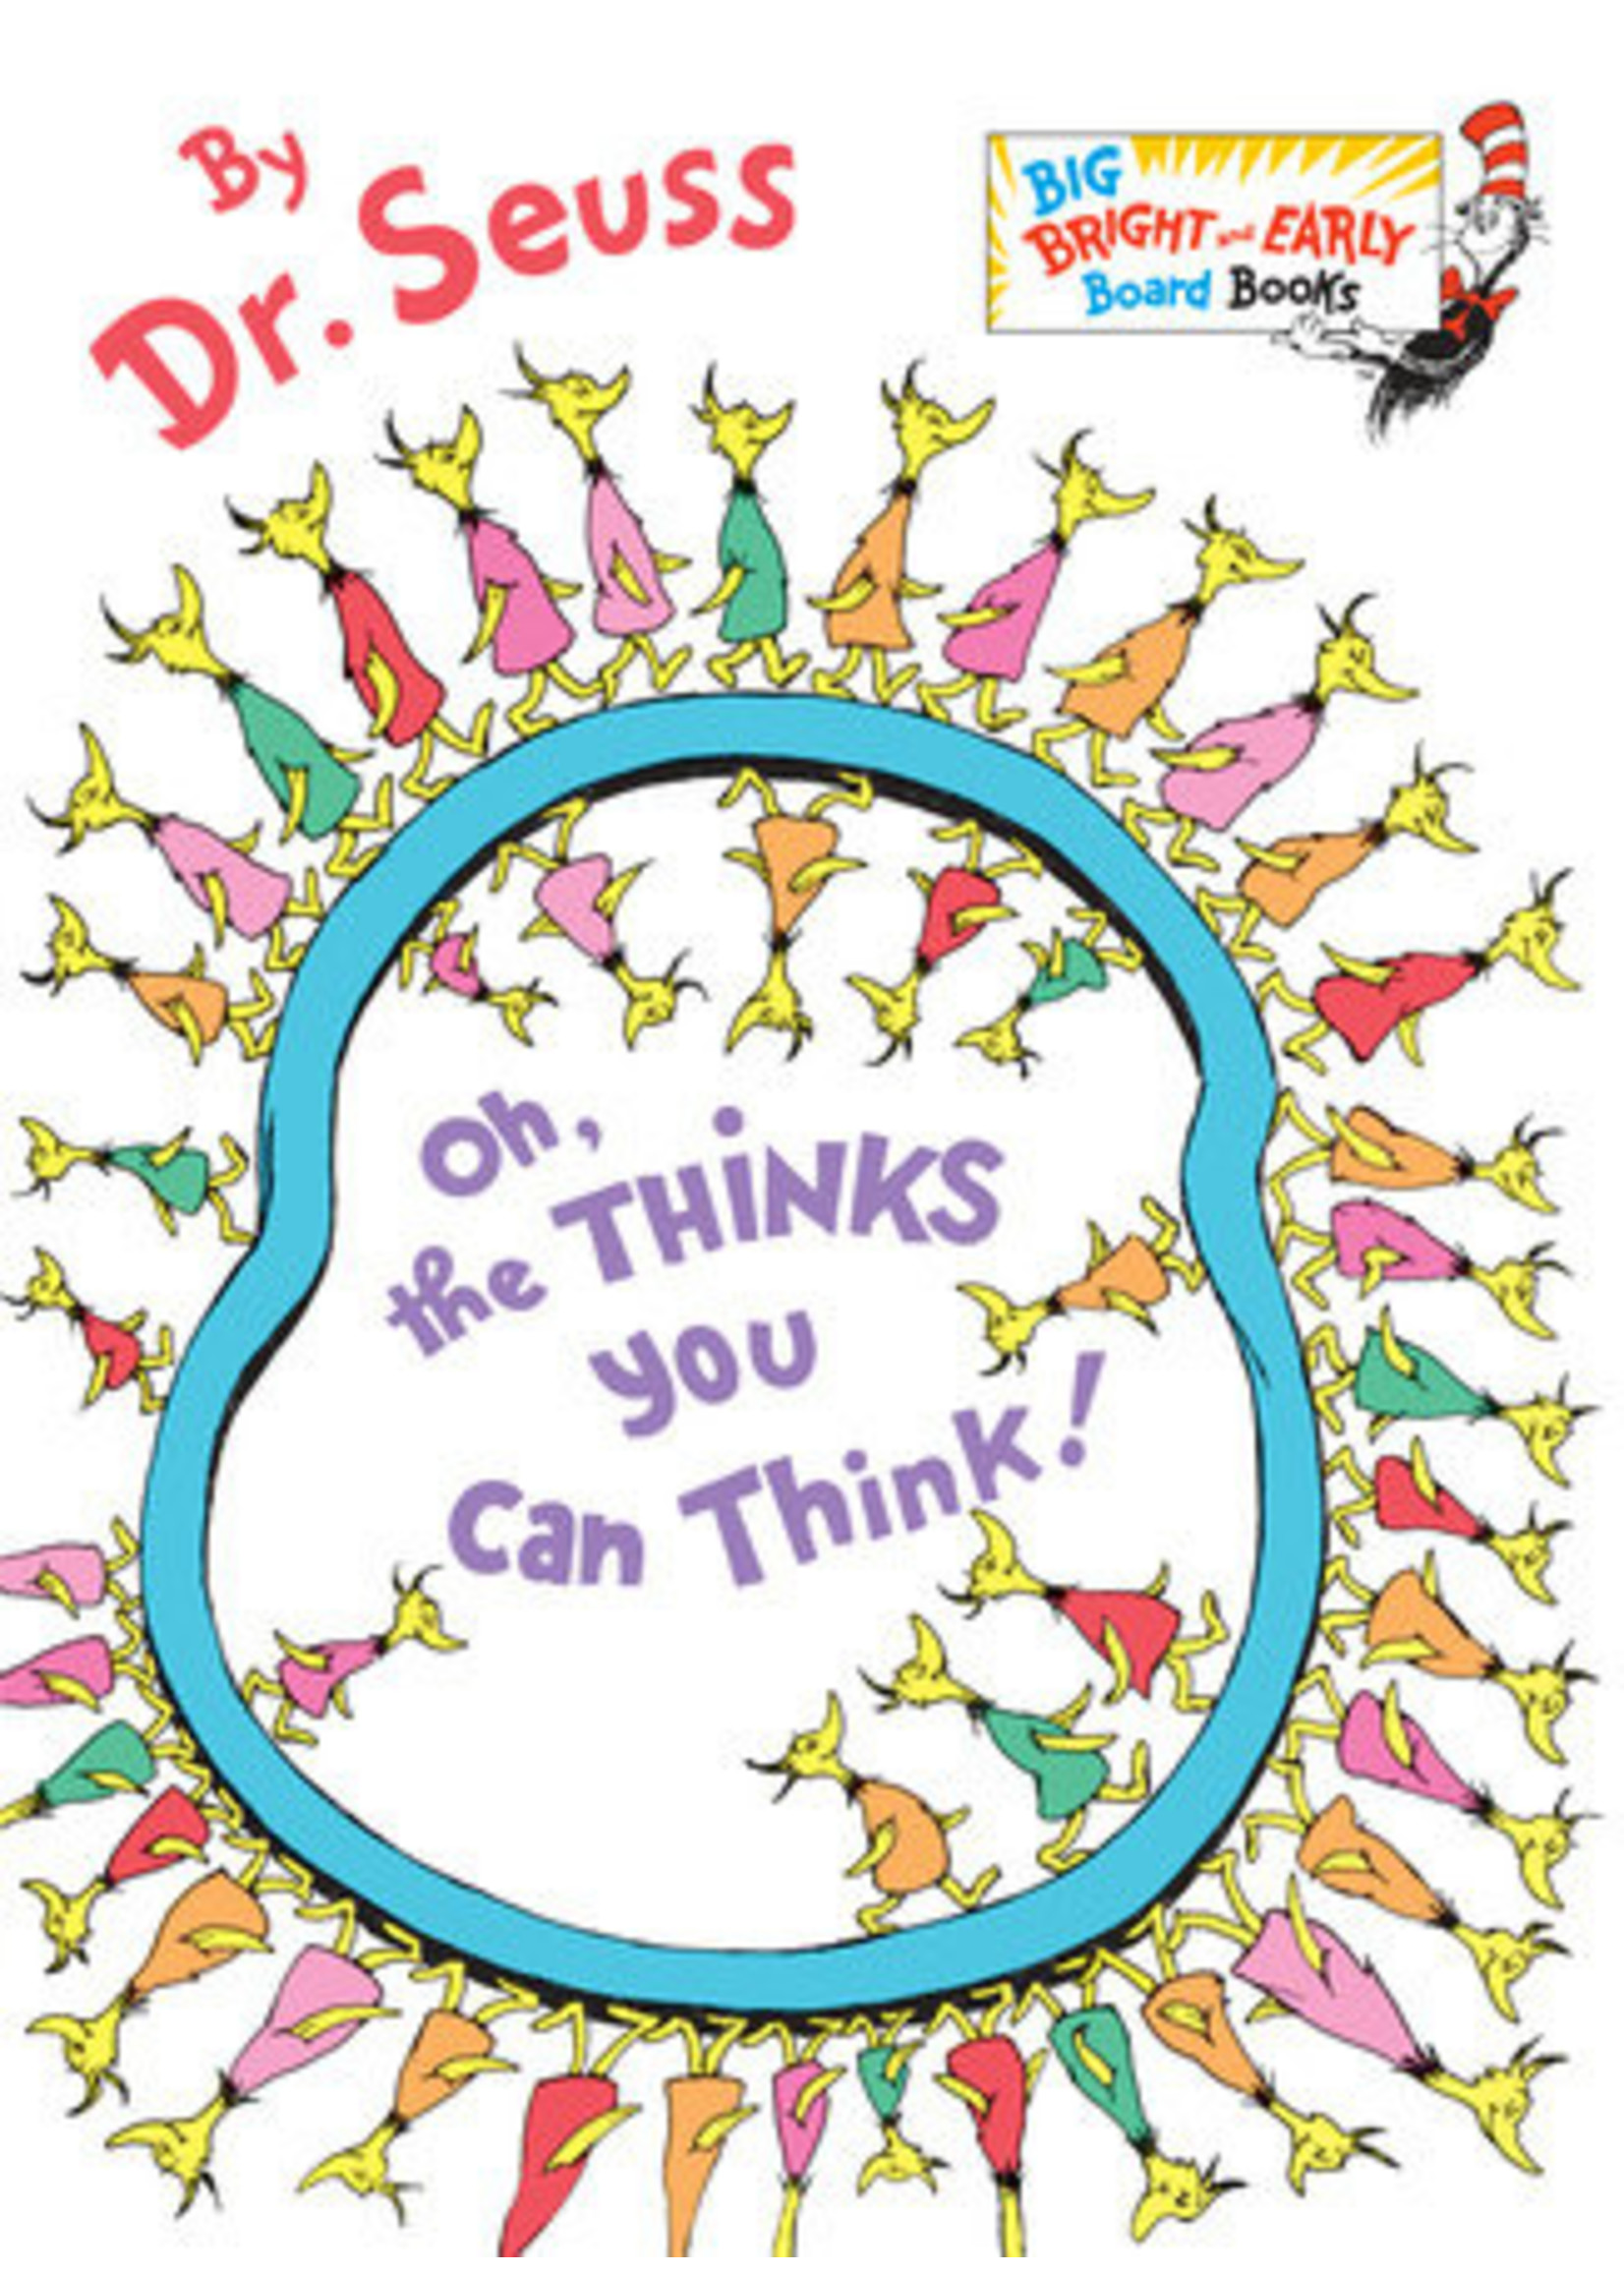 Penguin Dr. Seuss - Oh, the thinks you can think